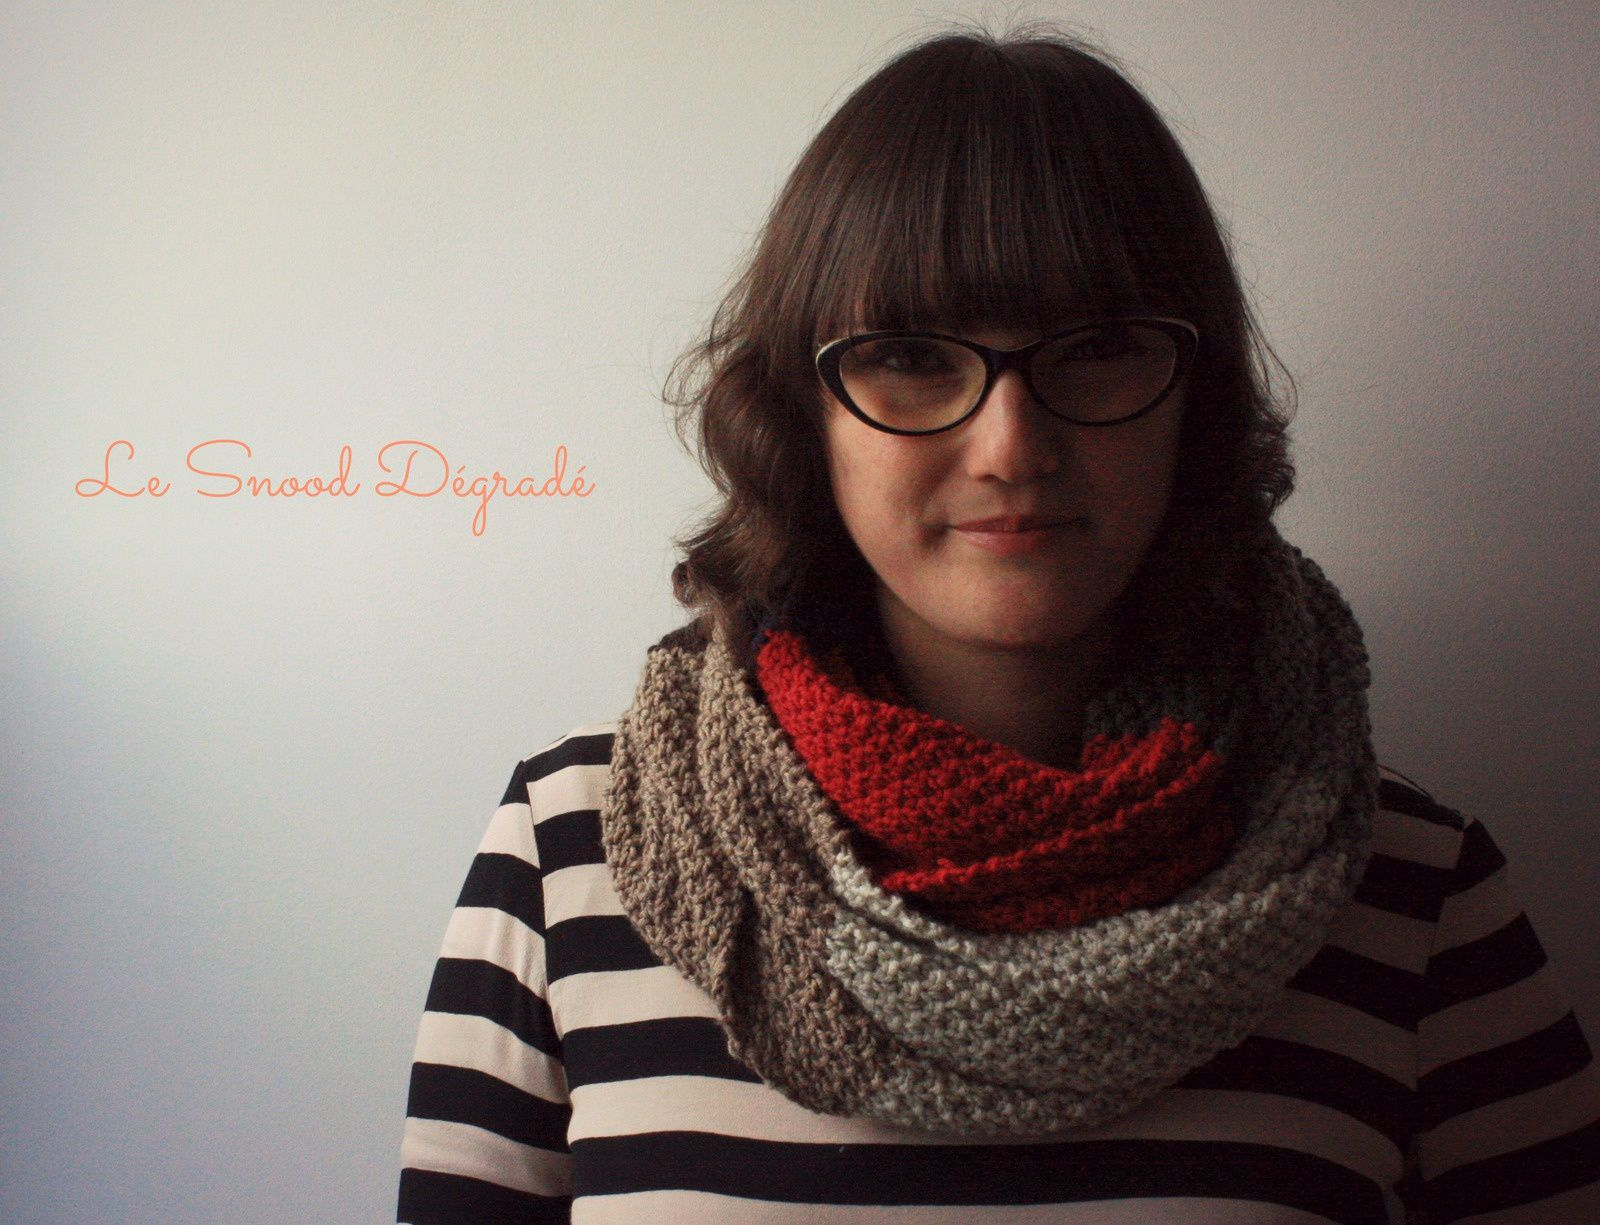 Le snood dégradé